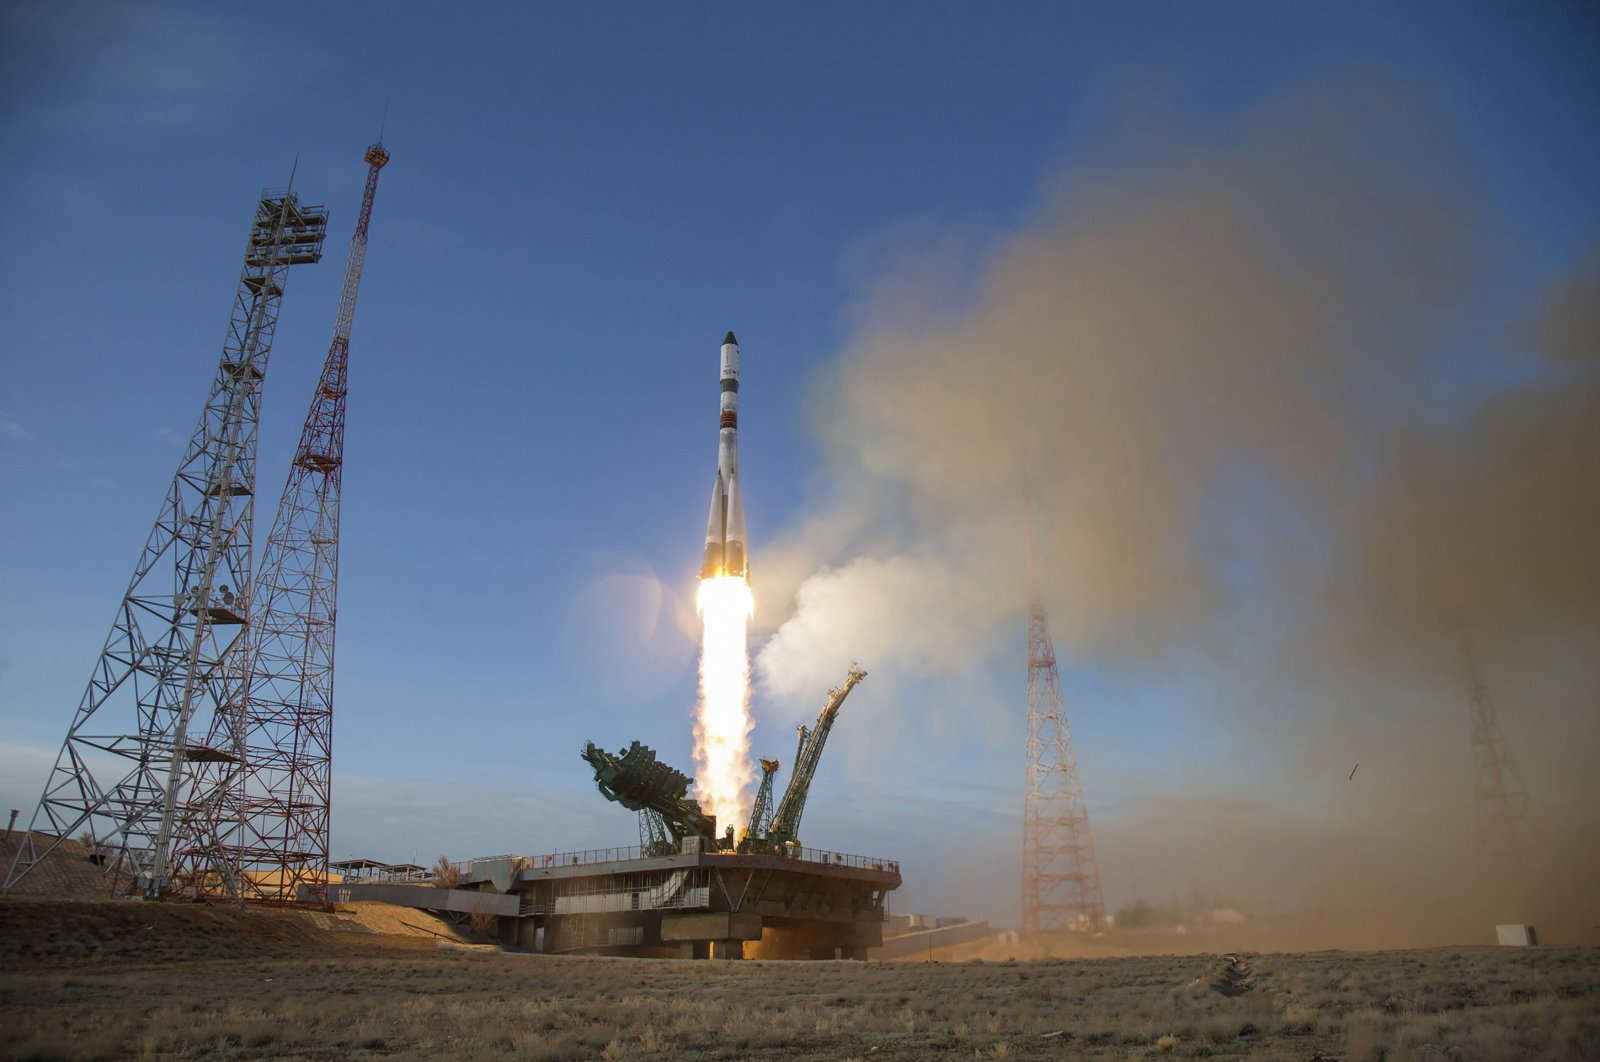 In this photo distributed by Roscosmos Space Agency Press Service, the Russian Progress MS-14 cargo spacecraft blasts off from the launch pad at Russia's space facility in Baikonur, Kazakhstan Saturday, April 25, 2020. (AP Photo)